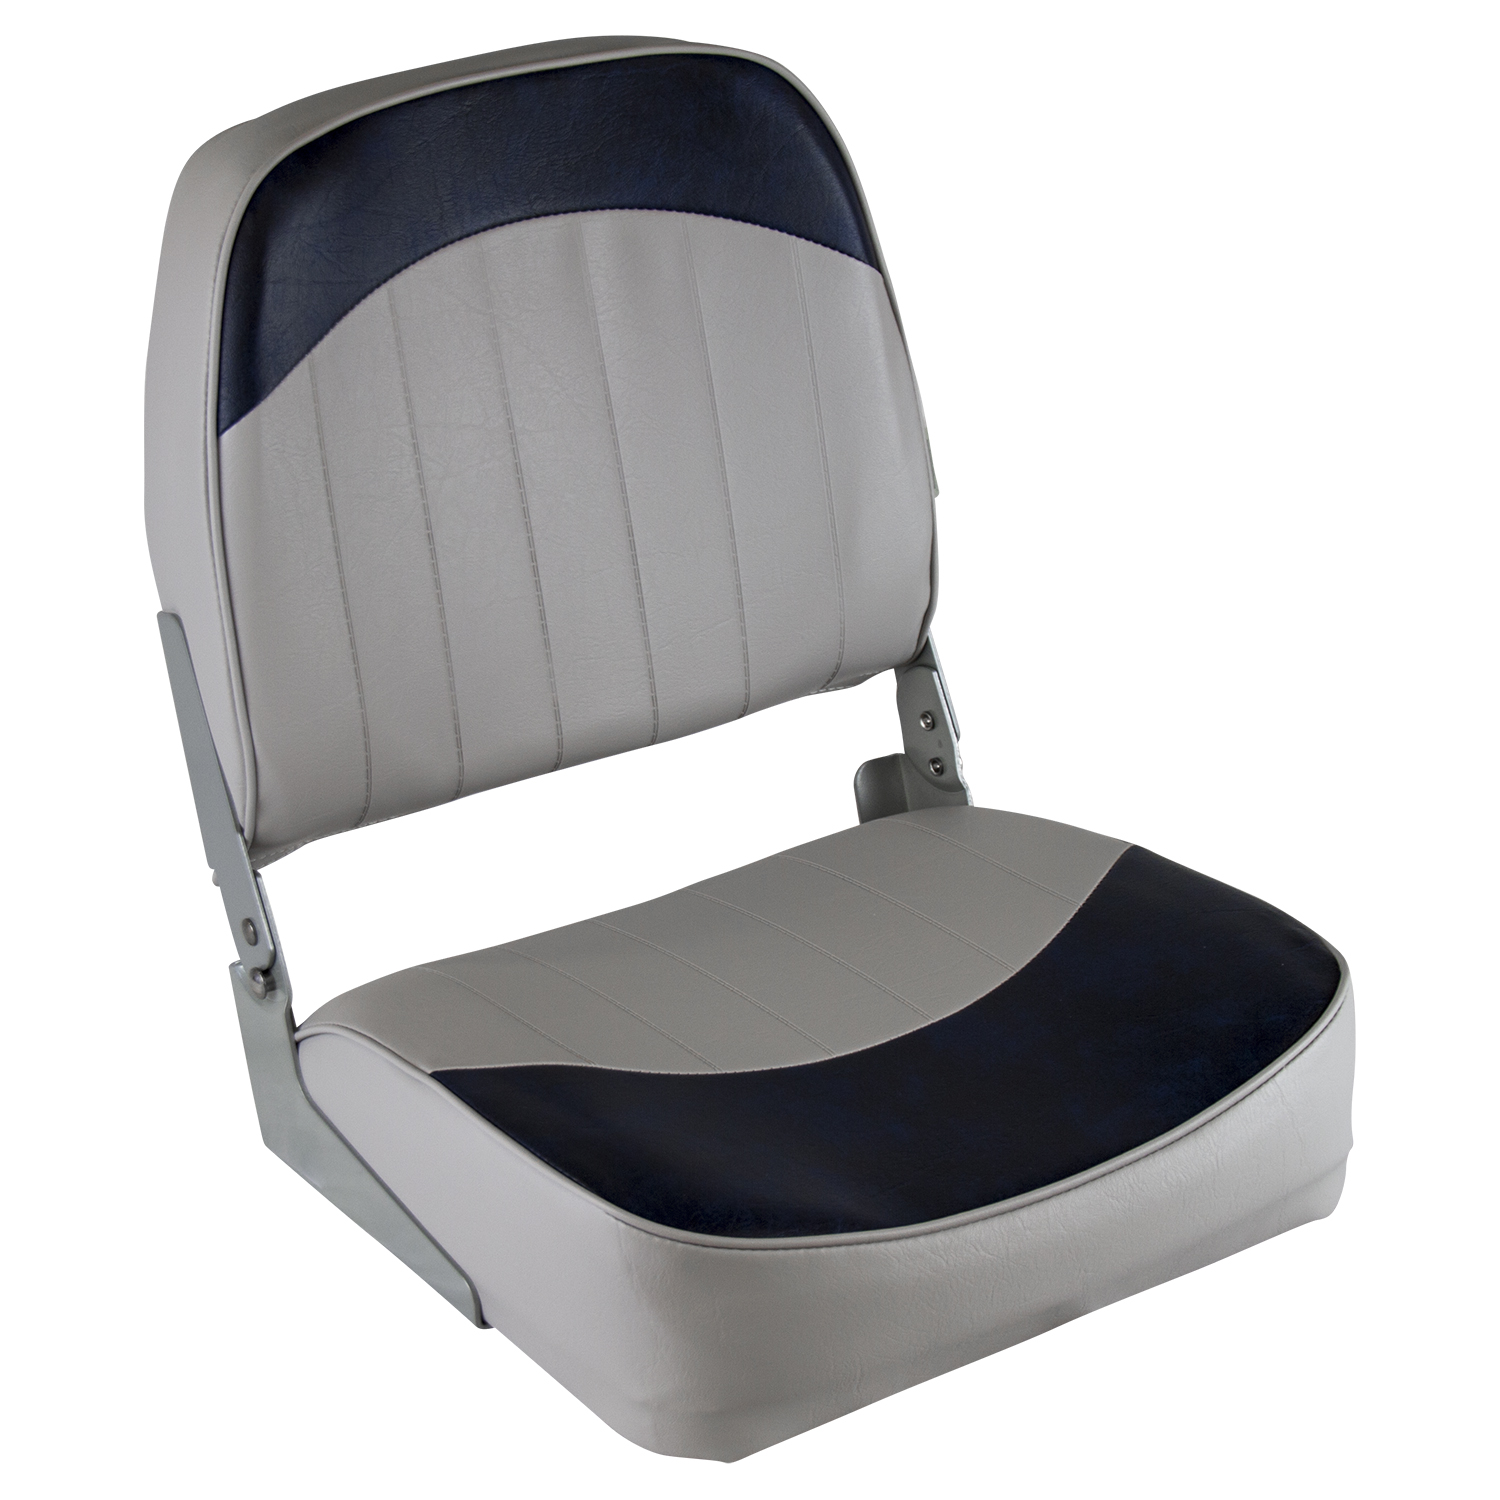 Wise 8WD734PLS-660 Low Back Boat Seat, Grey / Navy